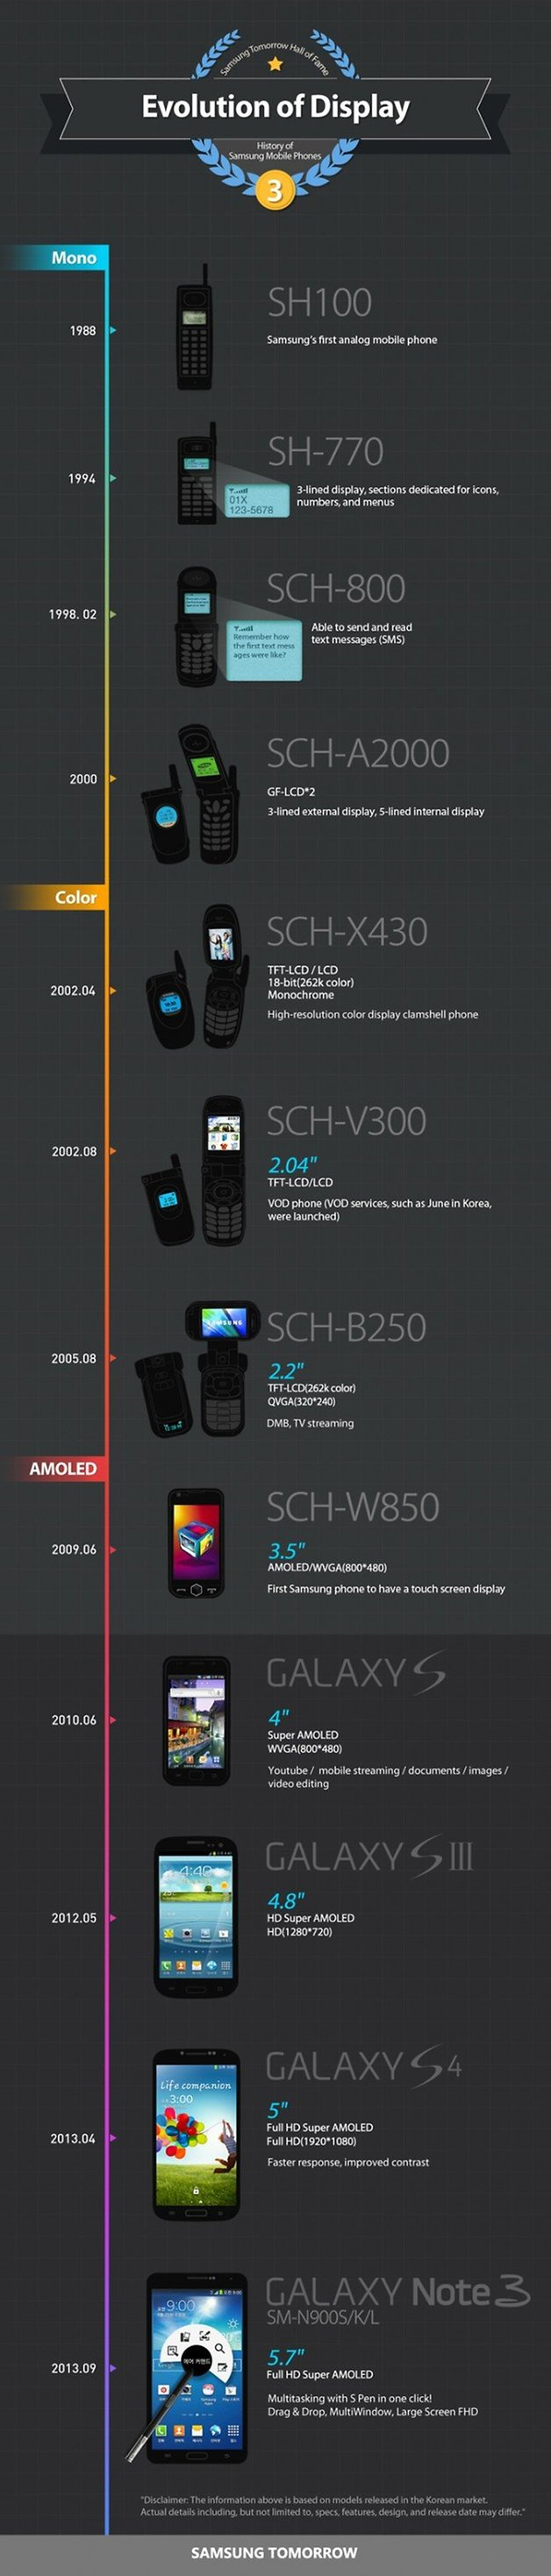 samsung evolution of display infographic large 645x3015